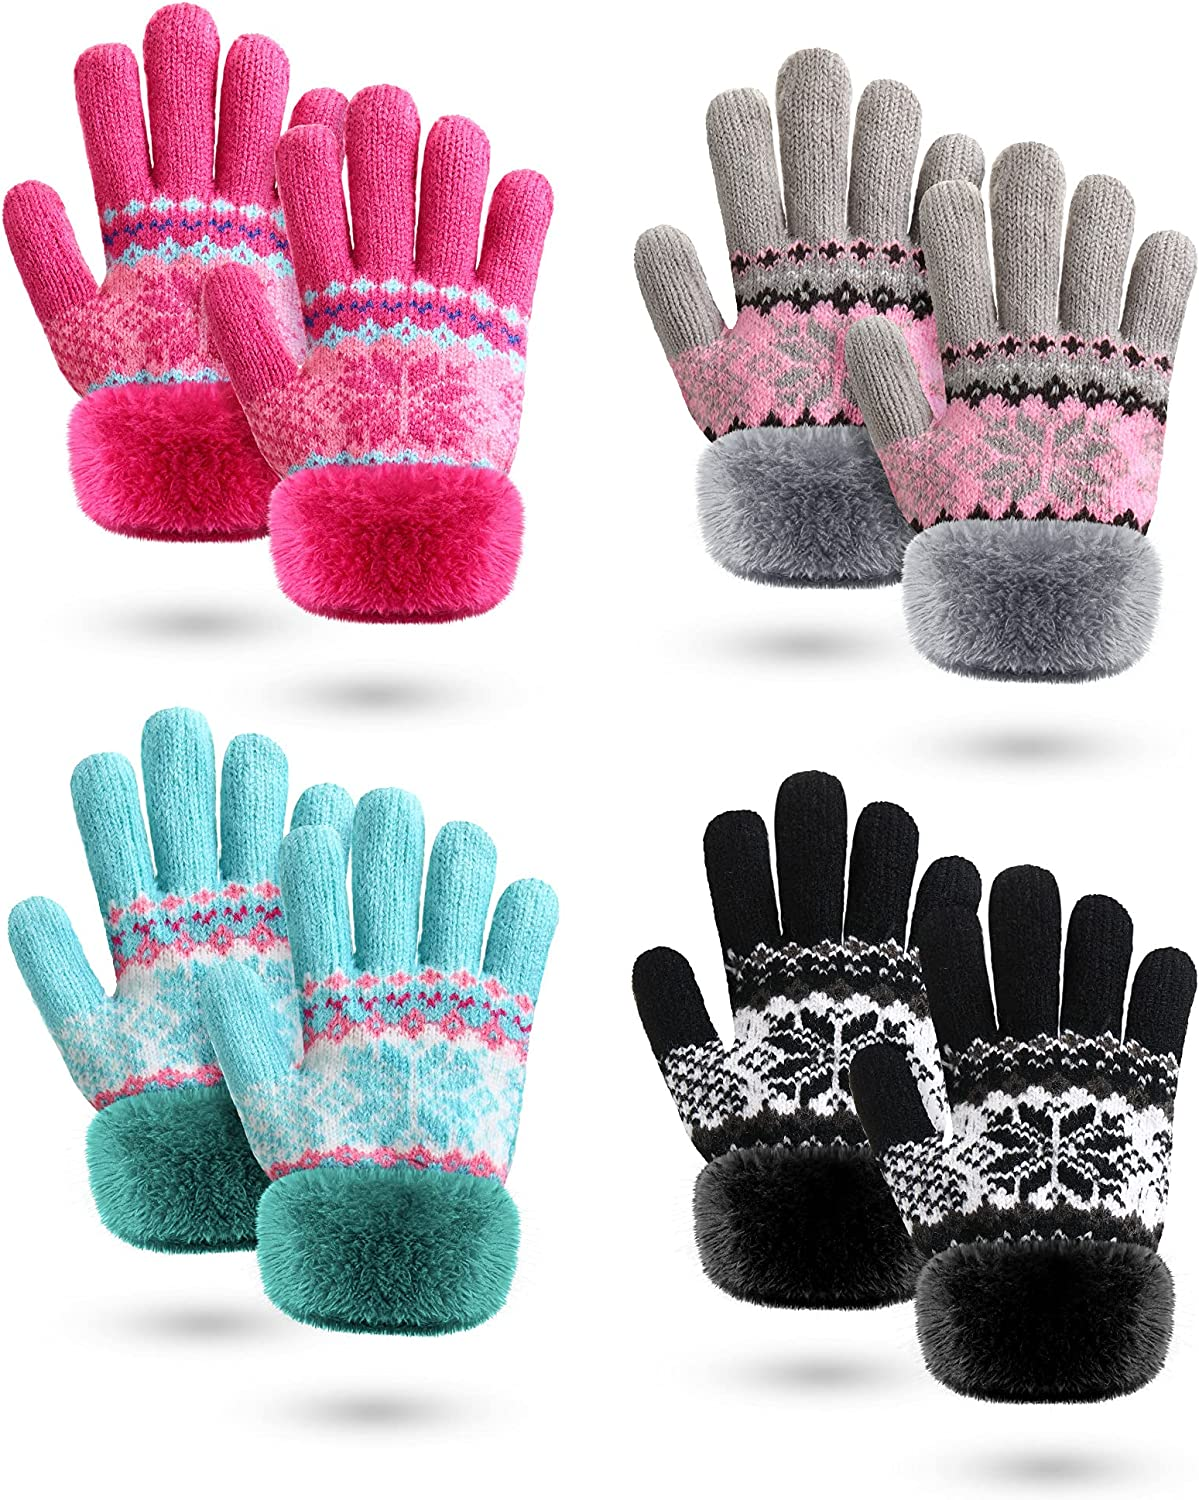 Toddler Winter Gloves 4 Pairs Baby Boy Girl Warm Snowflake Gloves Fleece Lining Gloves Faux Fur Cuff Winter Mittens Full Fingers Knitted Gloves